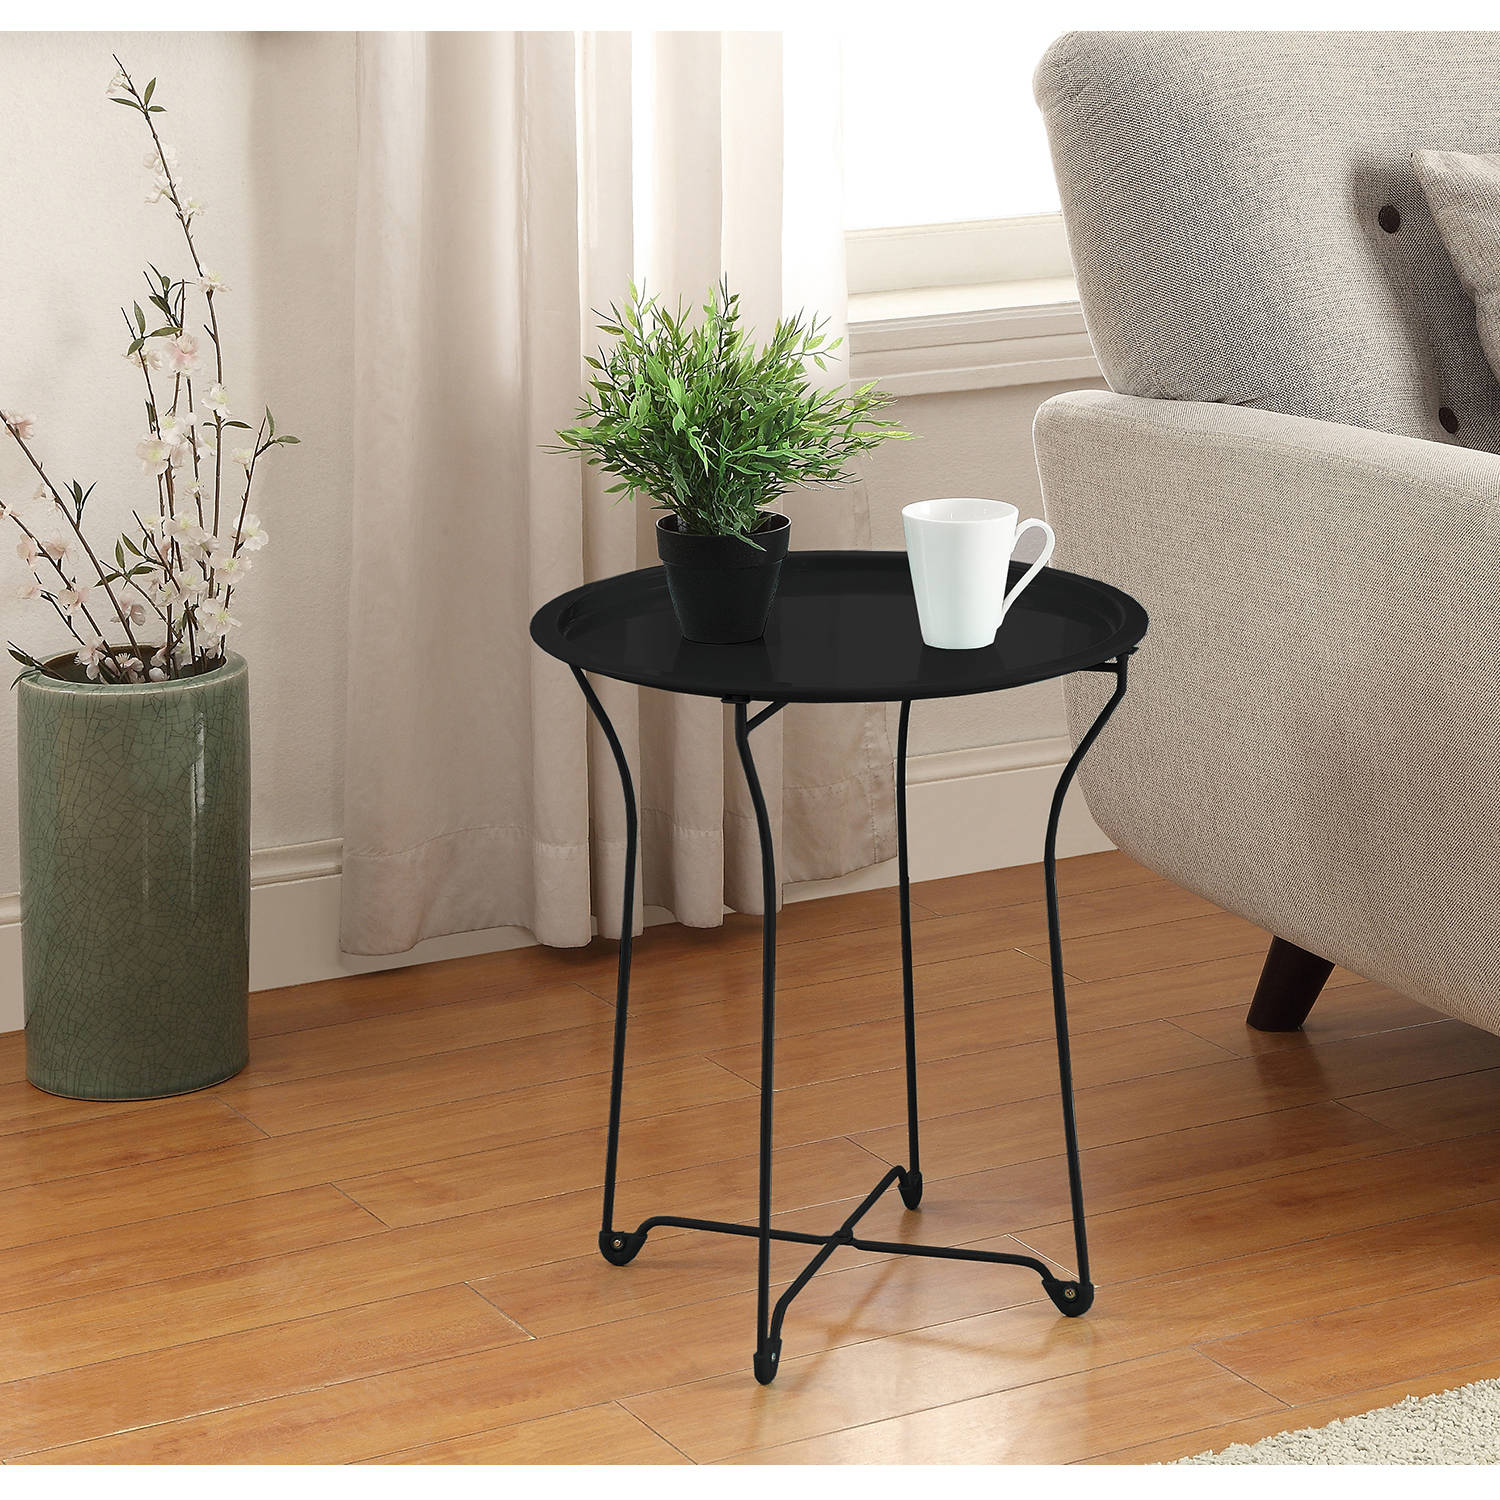 Mainstays Metal Tray Side Table Multiple Colors